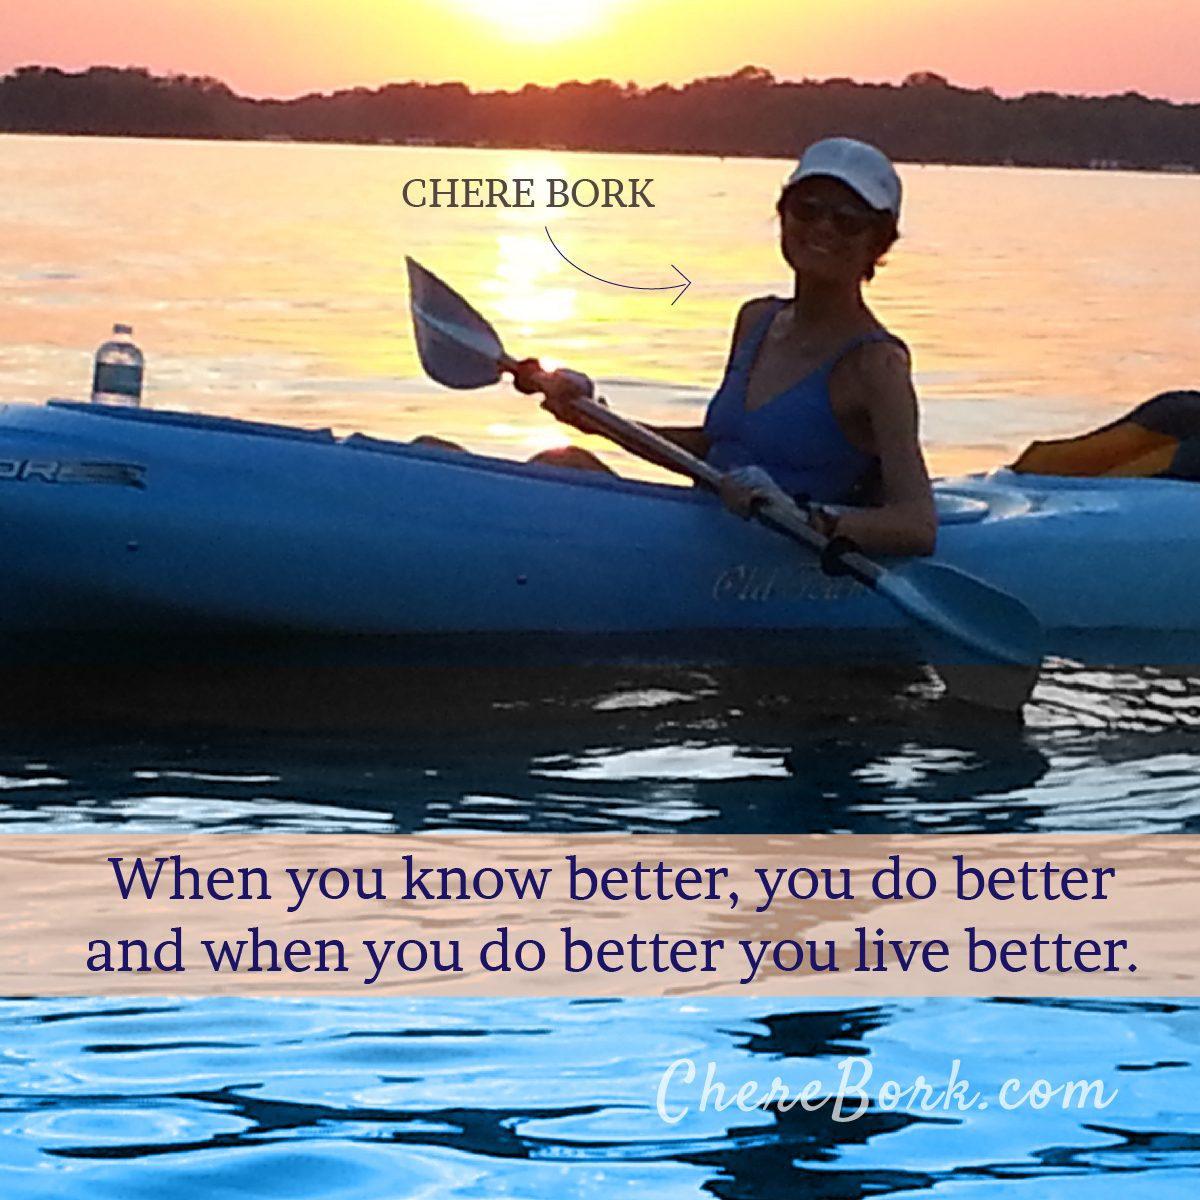 When you know better, you do better and when you do better you live better. -Chere Bork